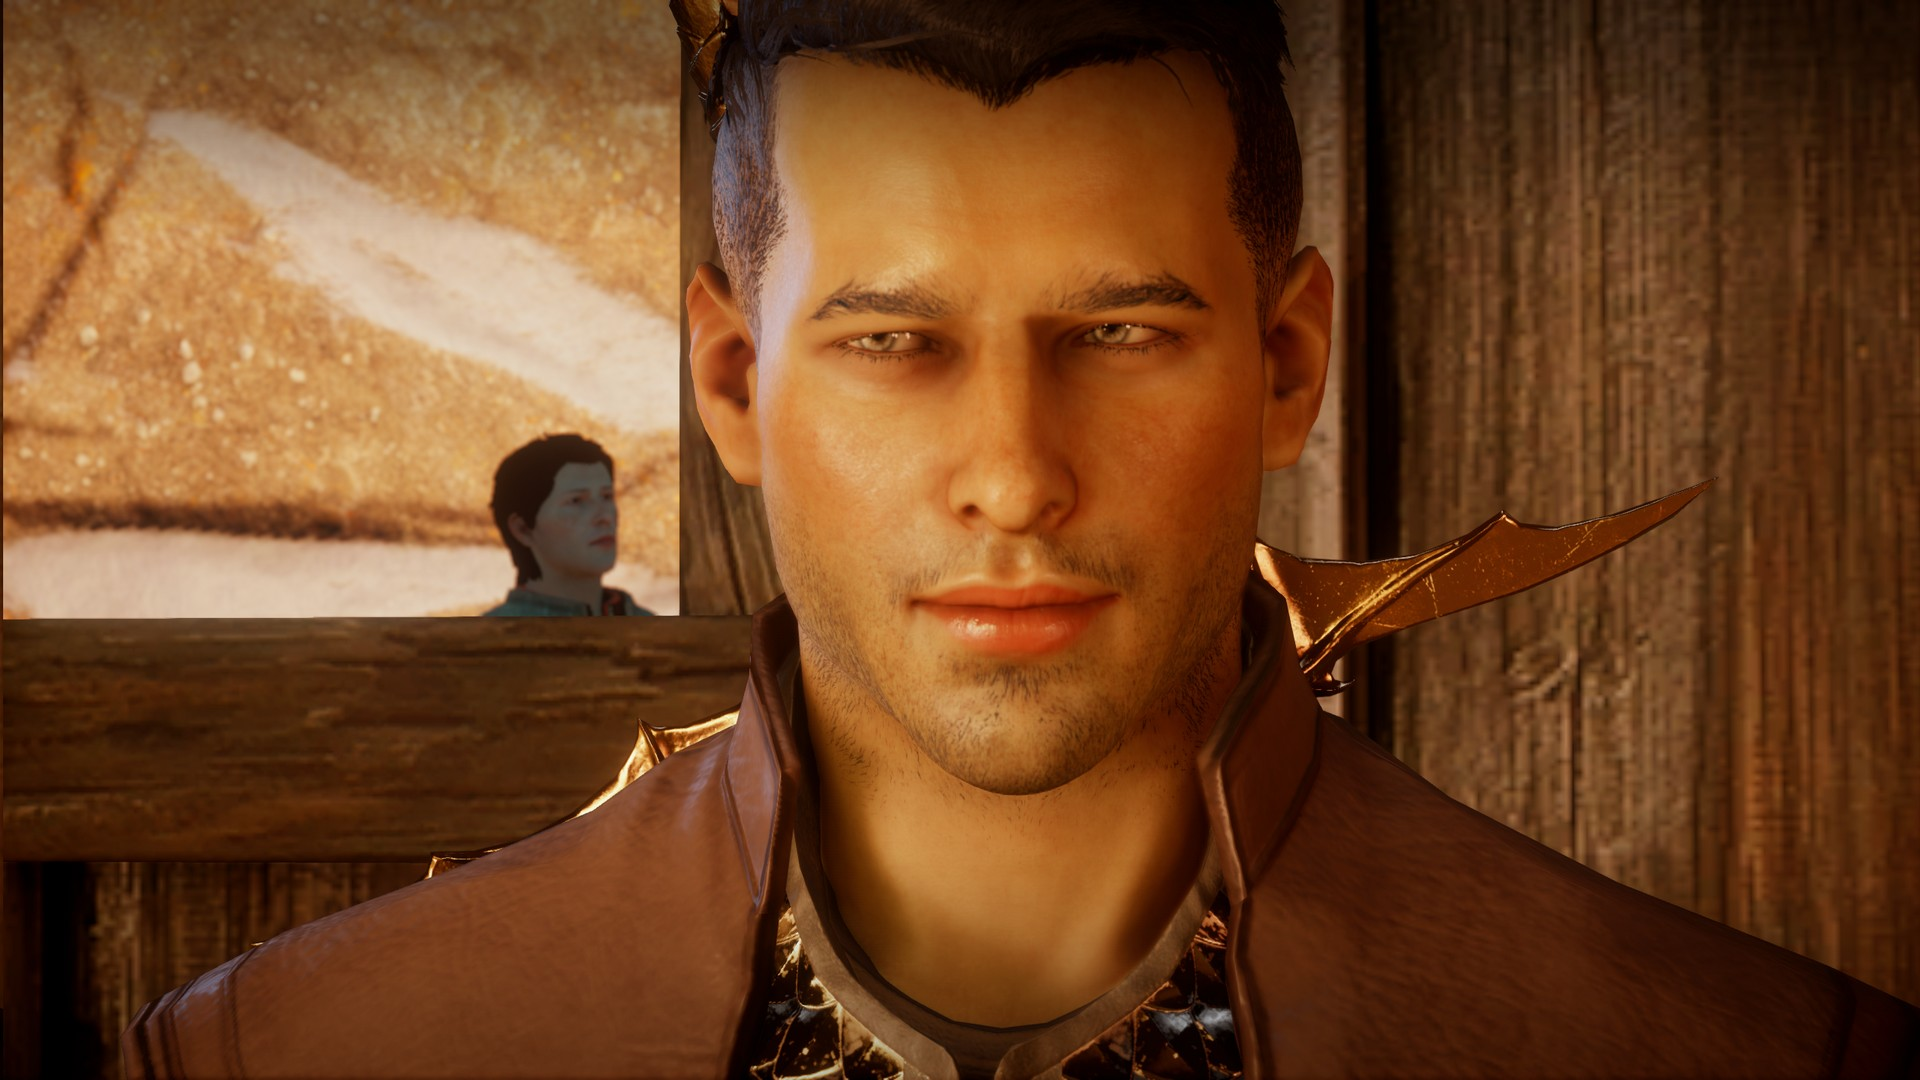 Soren Trevelyan 2 Handed Warrior At Dragon Age Inquisition Nexus Mods And Community